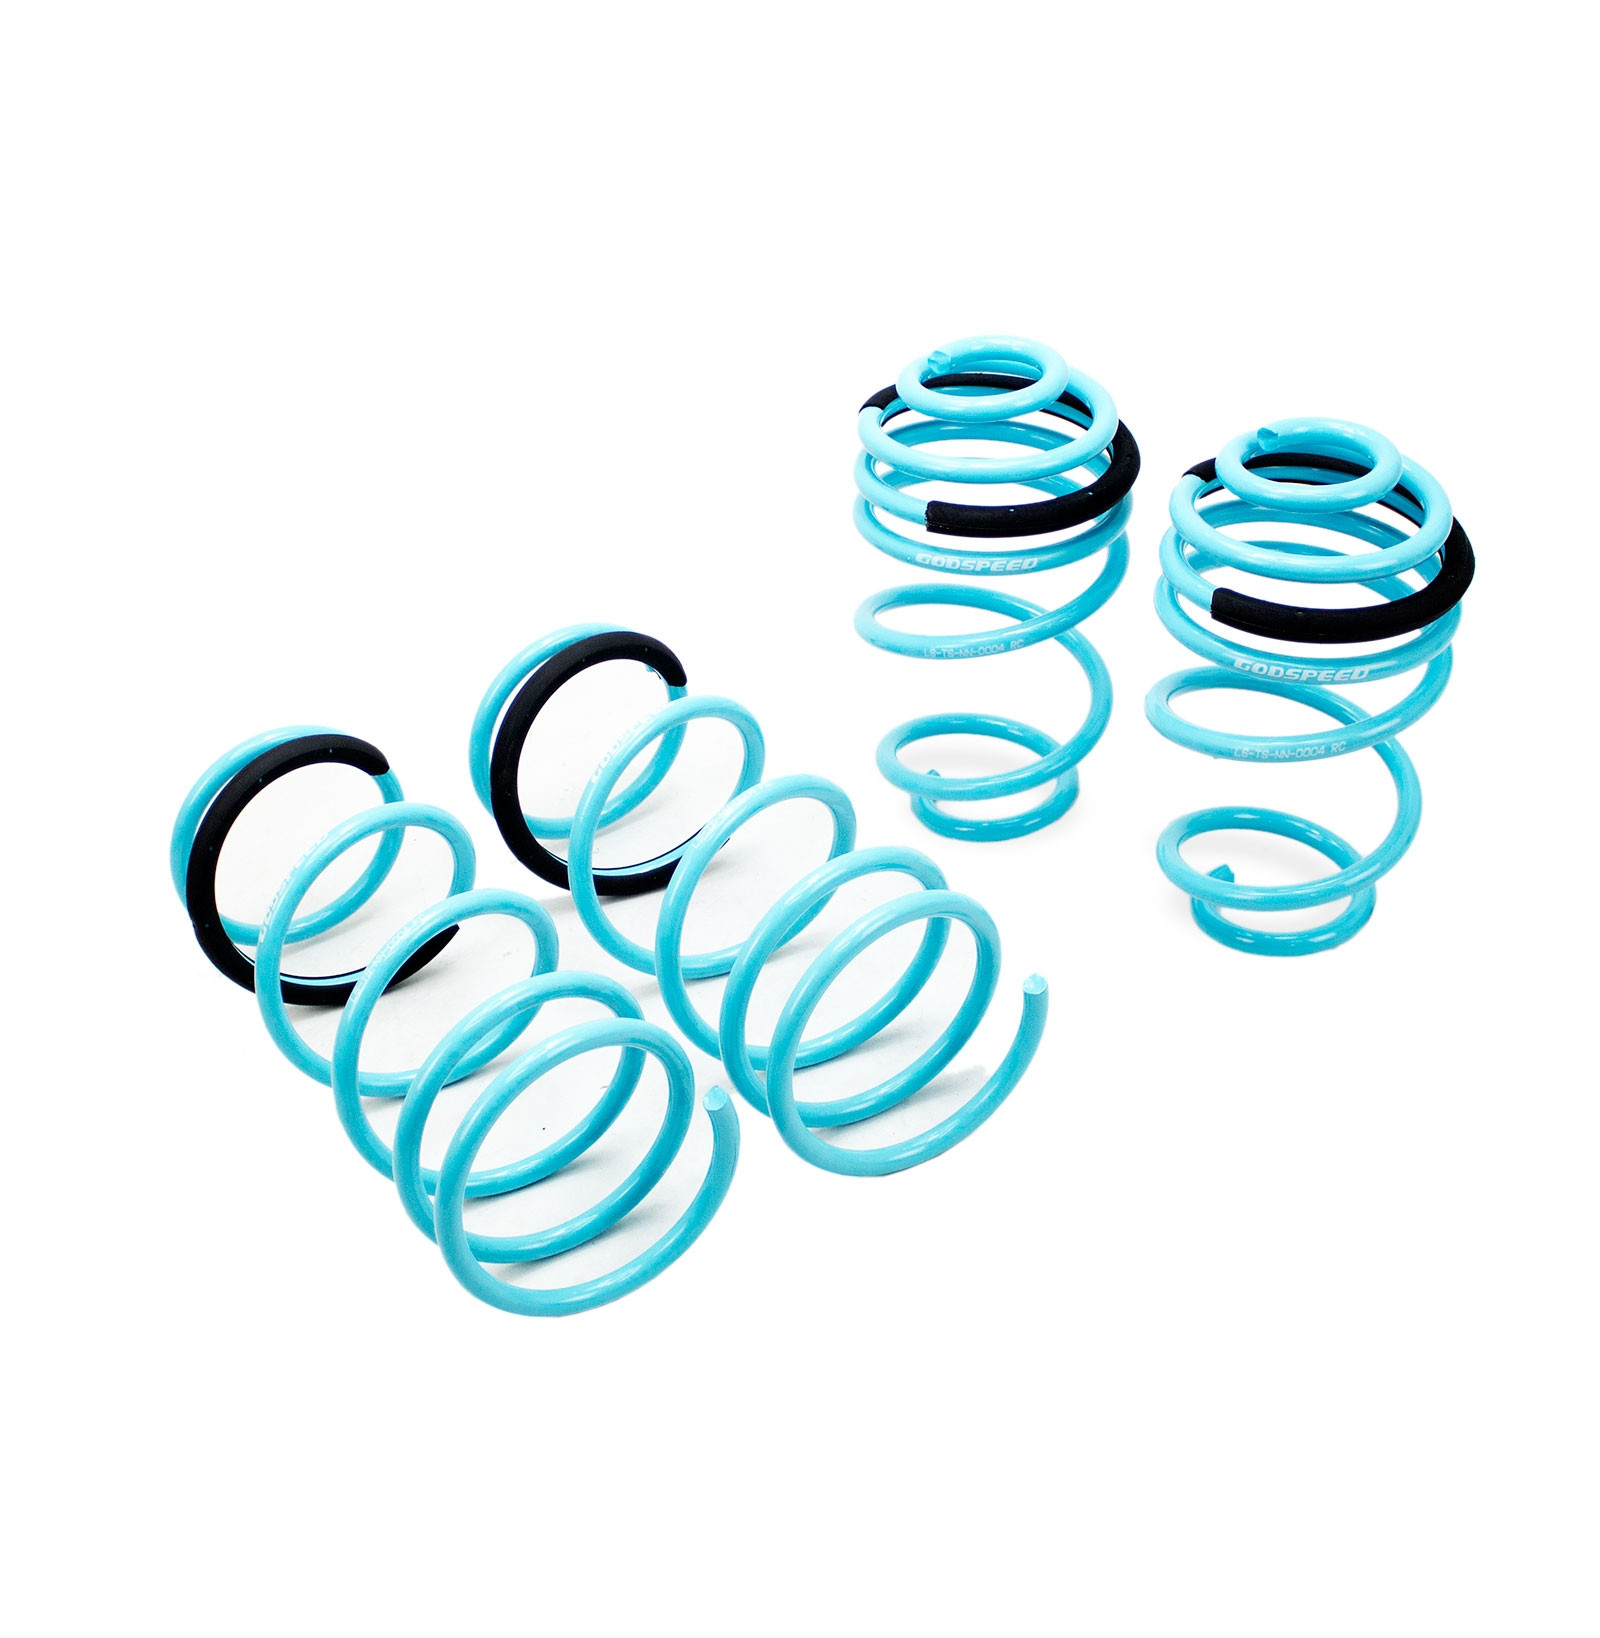 2010 Nissan Versa Suspension: Traction-S™ Performance Lowering Springs For Nissan Versa